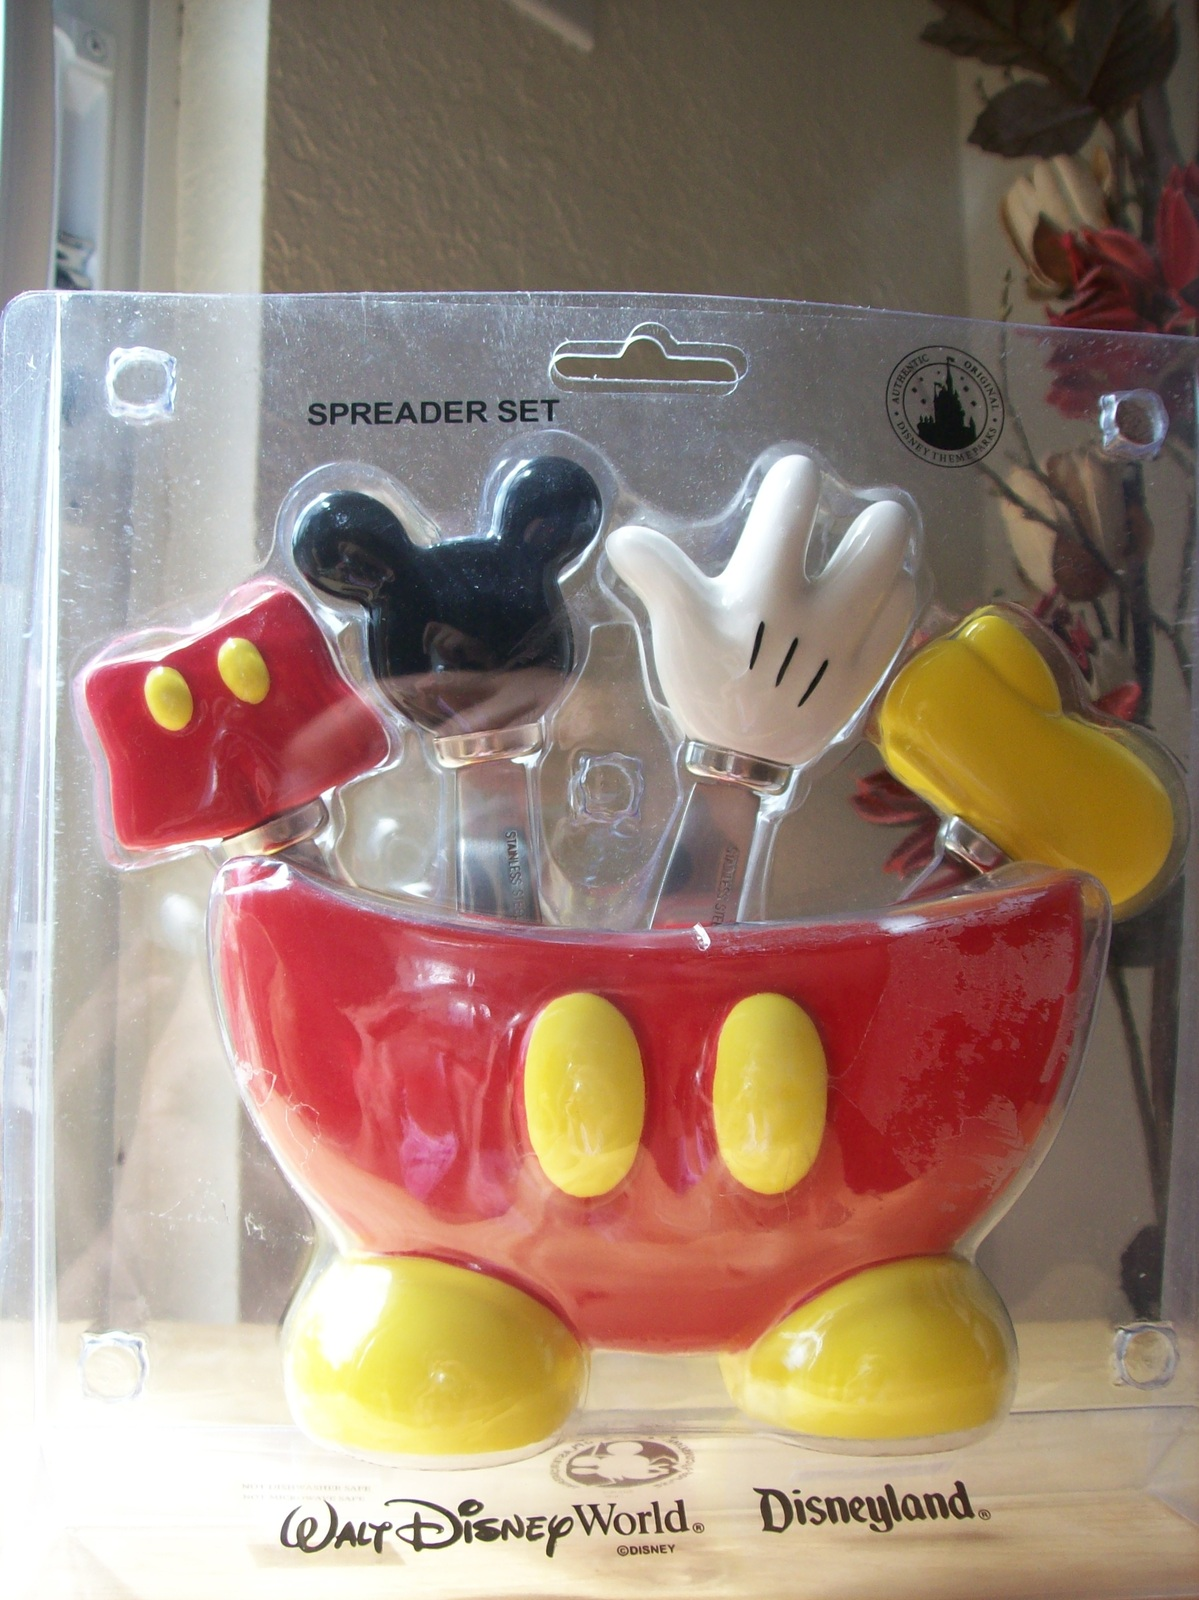 Disney Mickey Mouse Body Parts Spreader Set Dinnerware